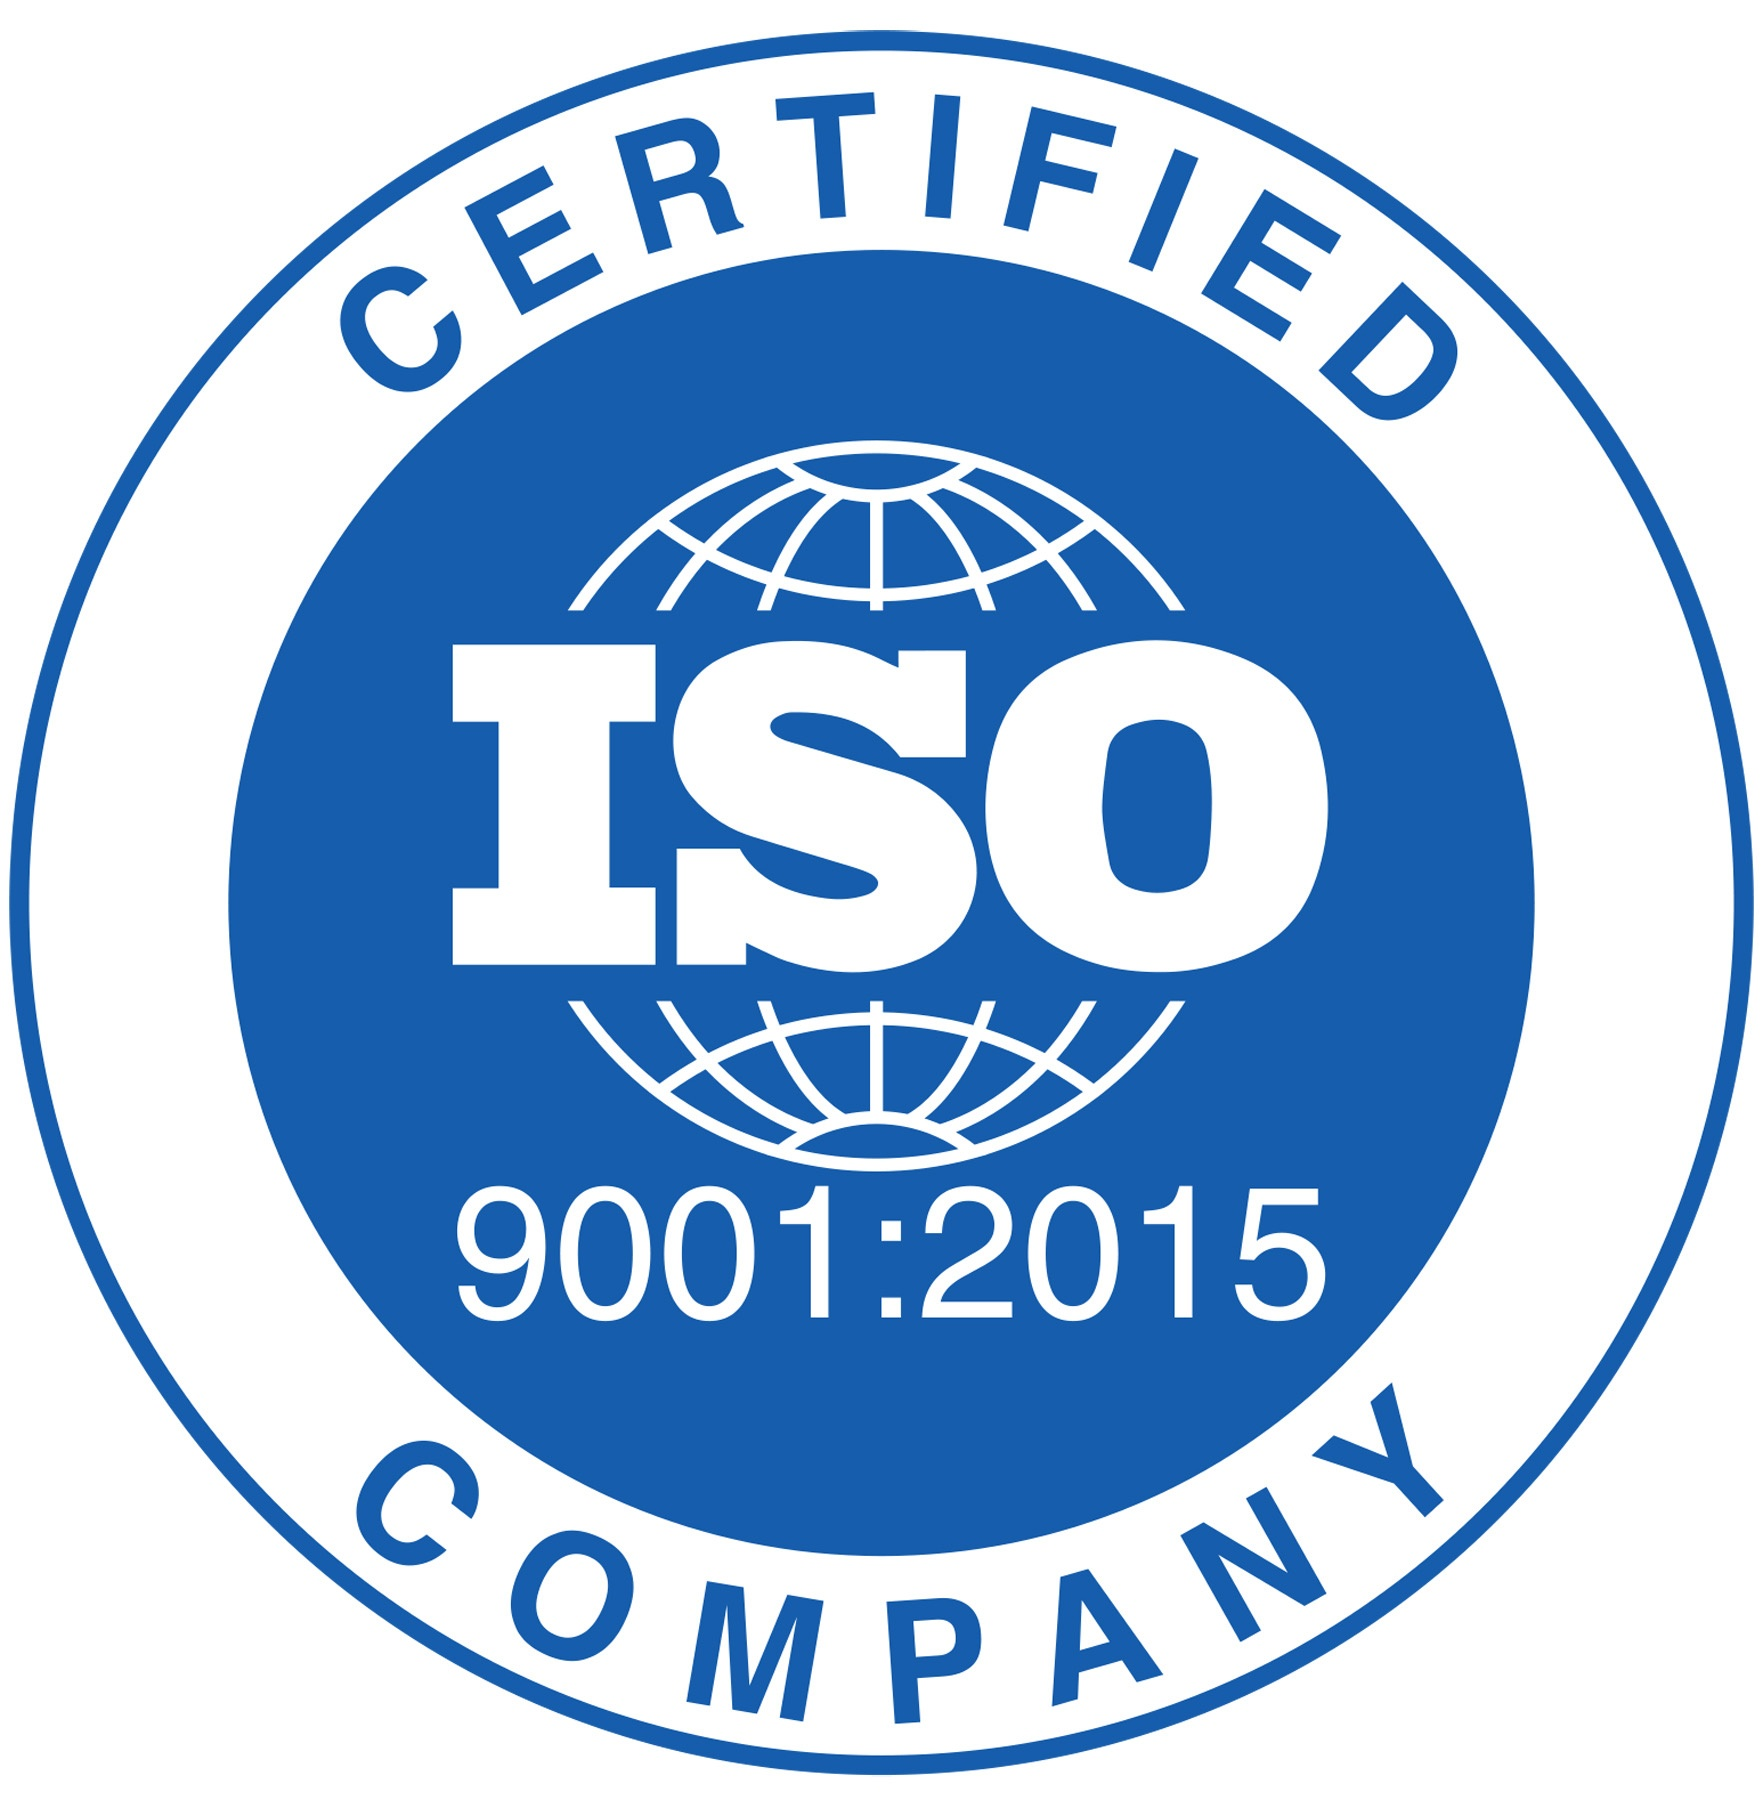 ISO 9001:2015 sets out the criteria for a quality management system